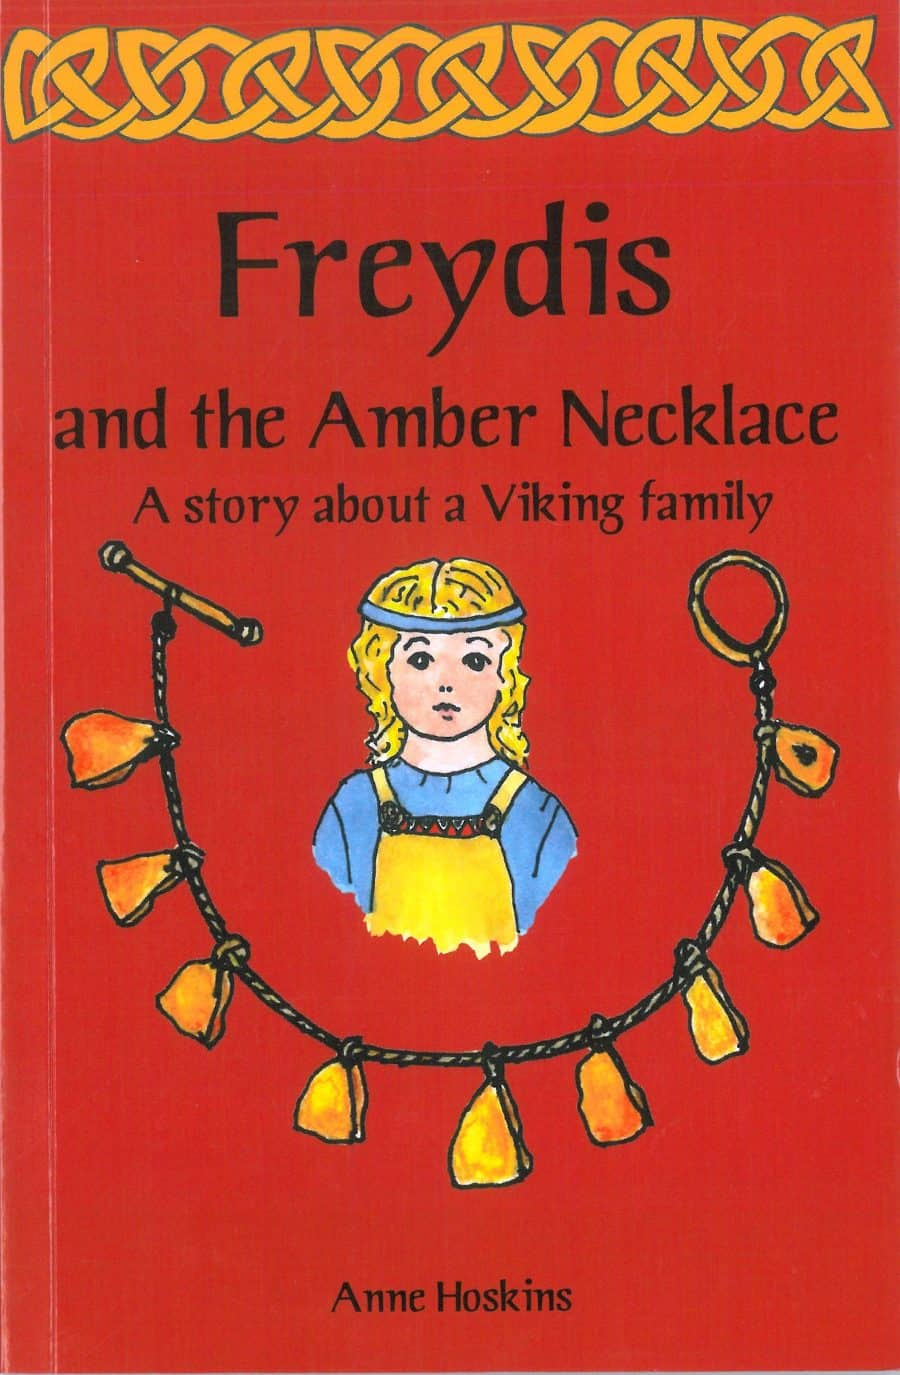 freydis and the amber necklace